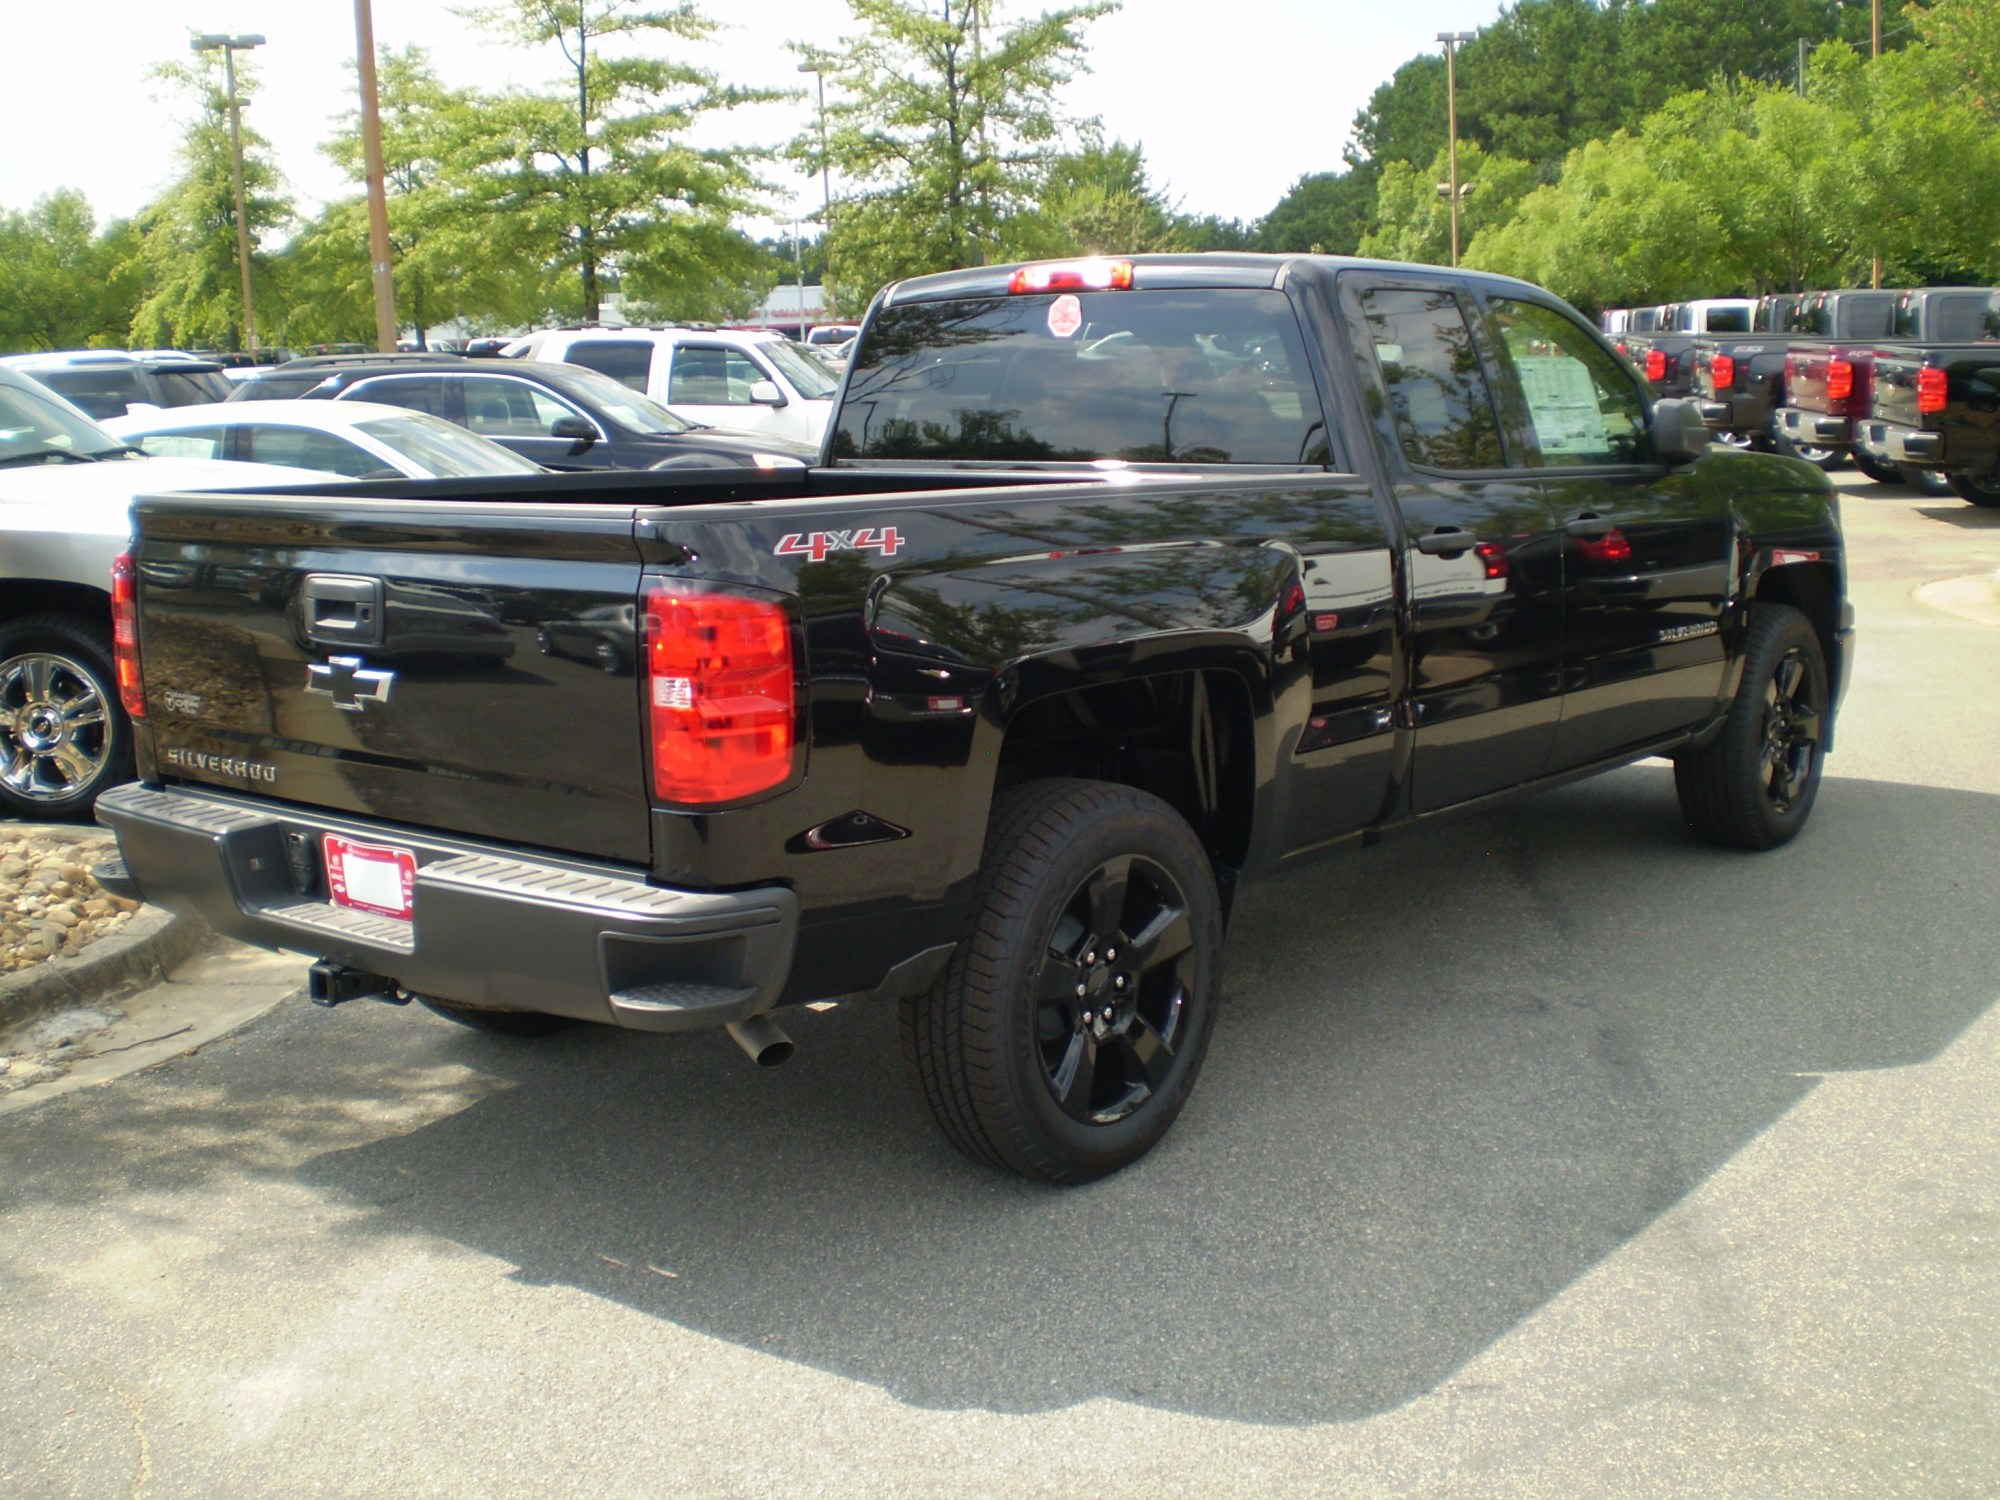 hight resolution of file 2015 chevrolet silverado wt double cab standard bed black out edition reverse jpg